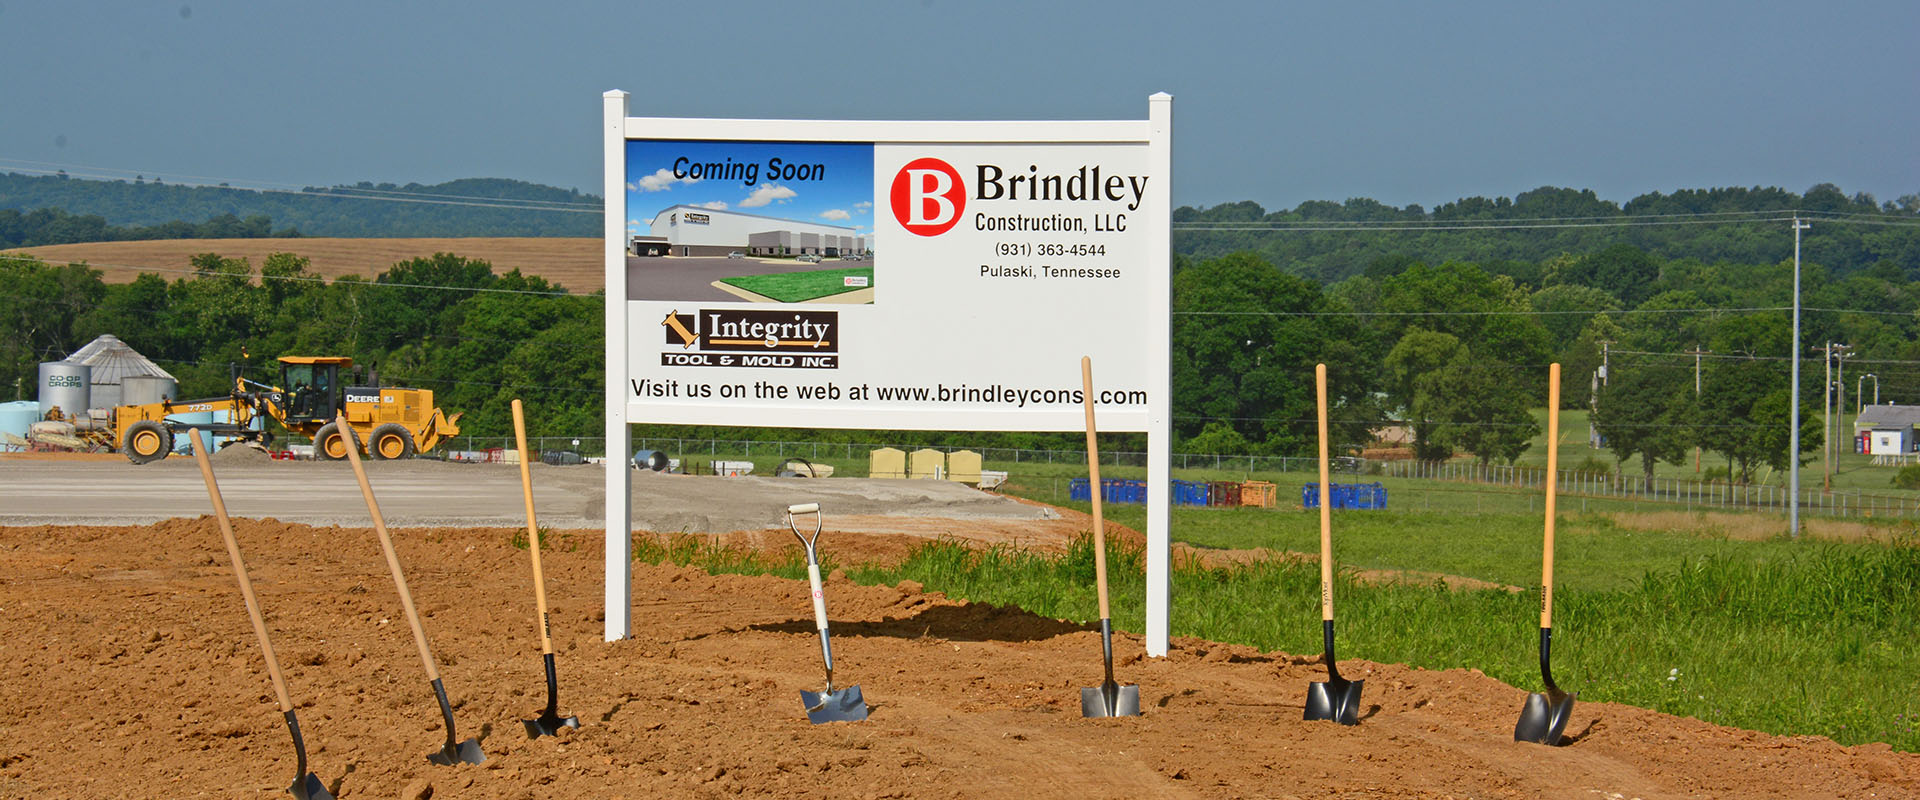 General Contracting Services | Brindley Construction